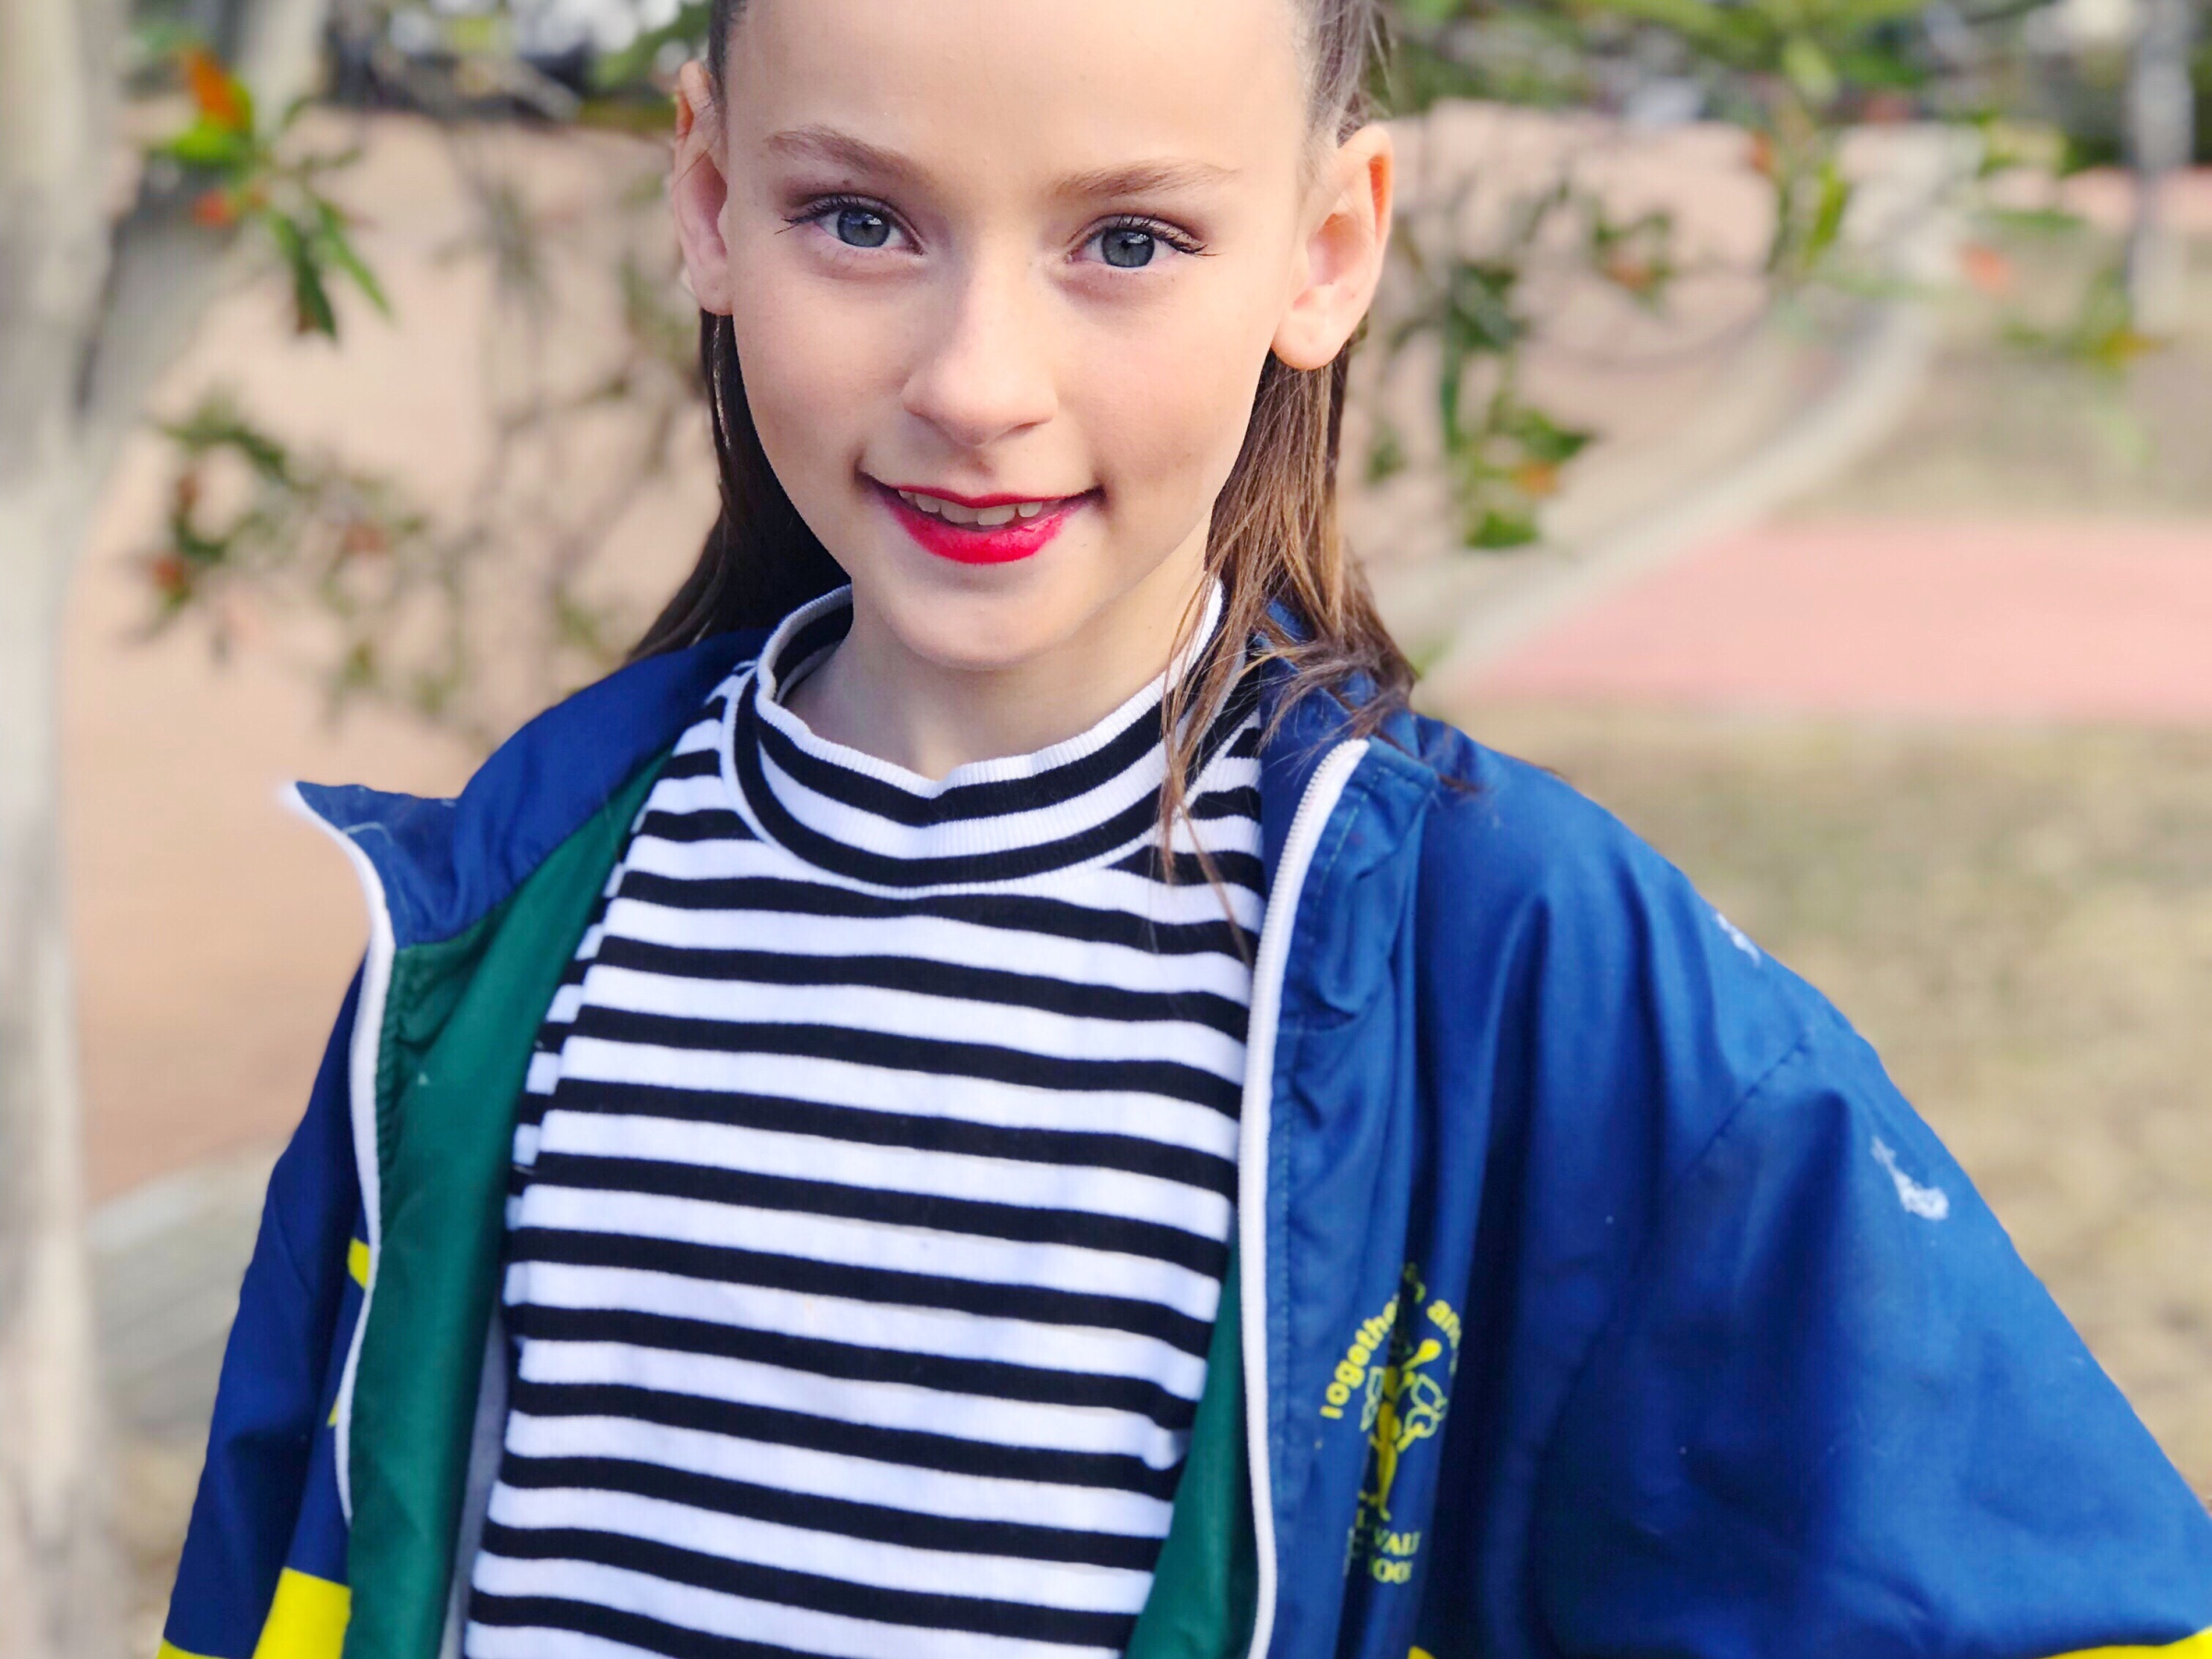 Girl with pony tail smiling in front of tree in dance clothes